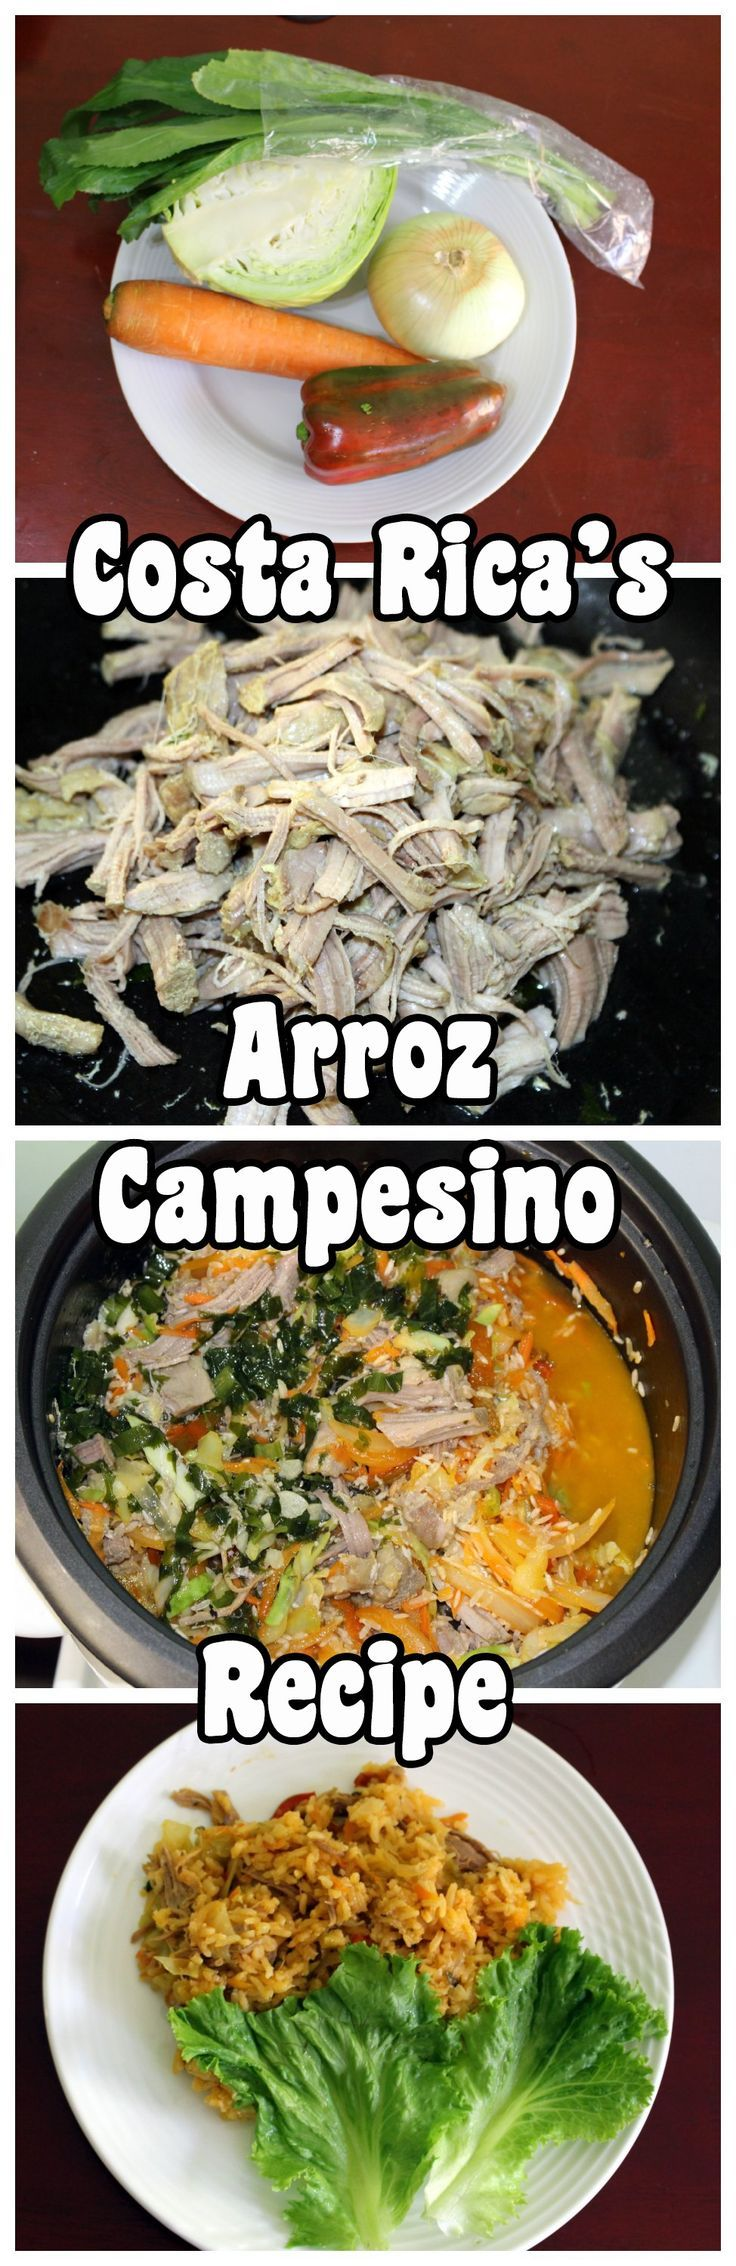 How to make a very traditional dish of Costa Rica that you won't find in many sodas - arroz campesino (farmer's rice). Easy to make, filling and tasty!